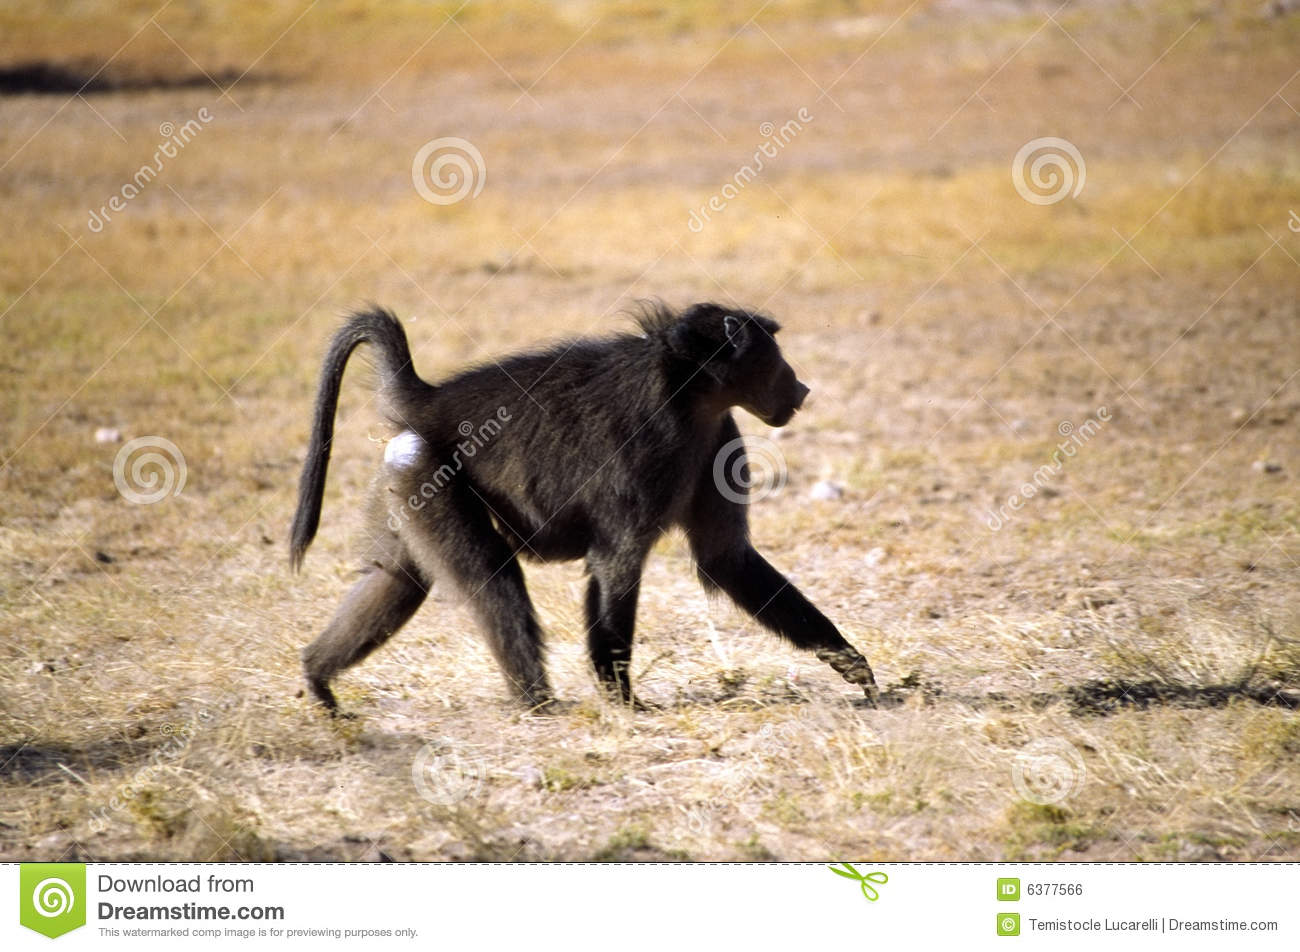 Funny Macaque Monkey Walking On A Ground Stock Photo, Picture And ...